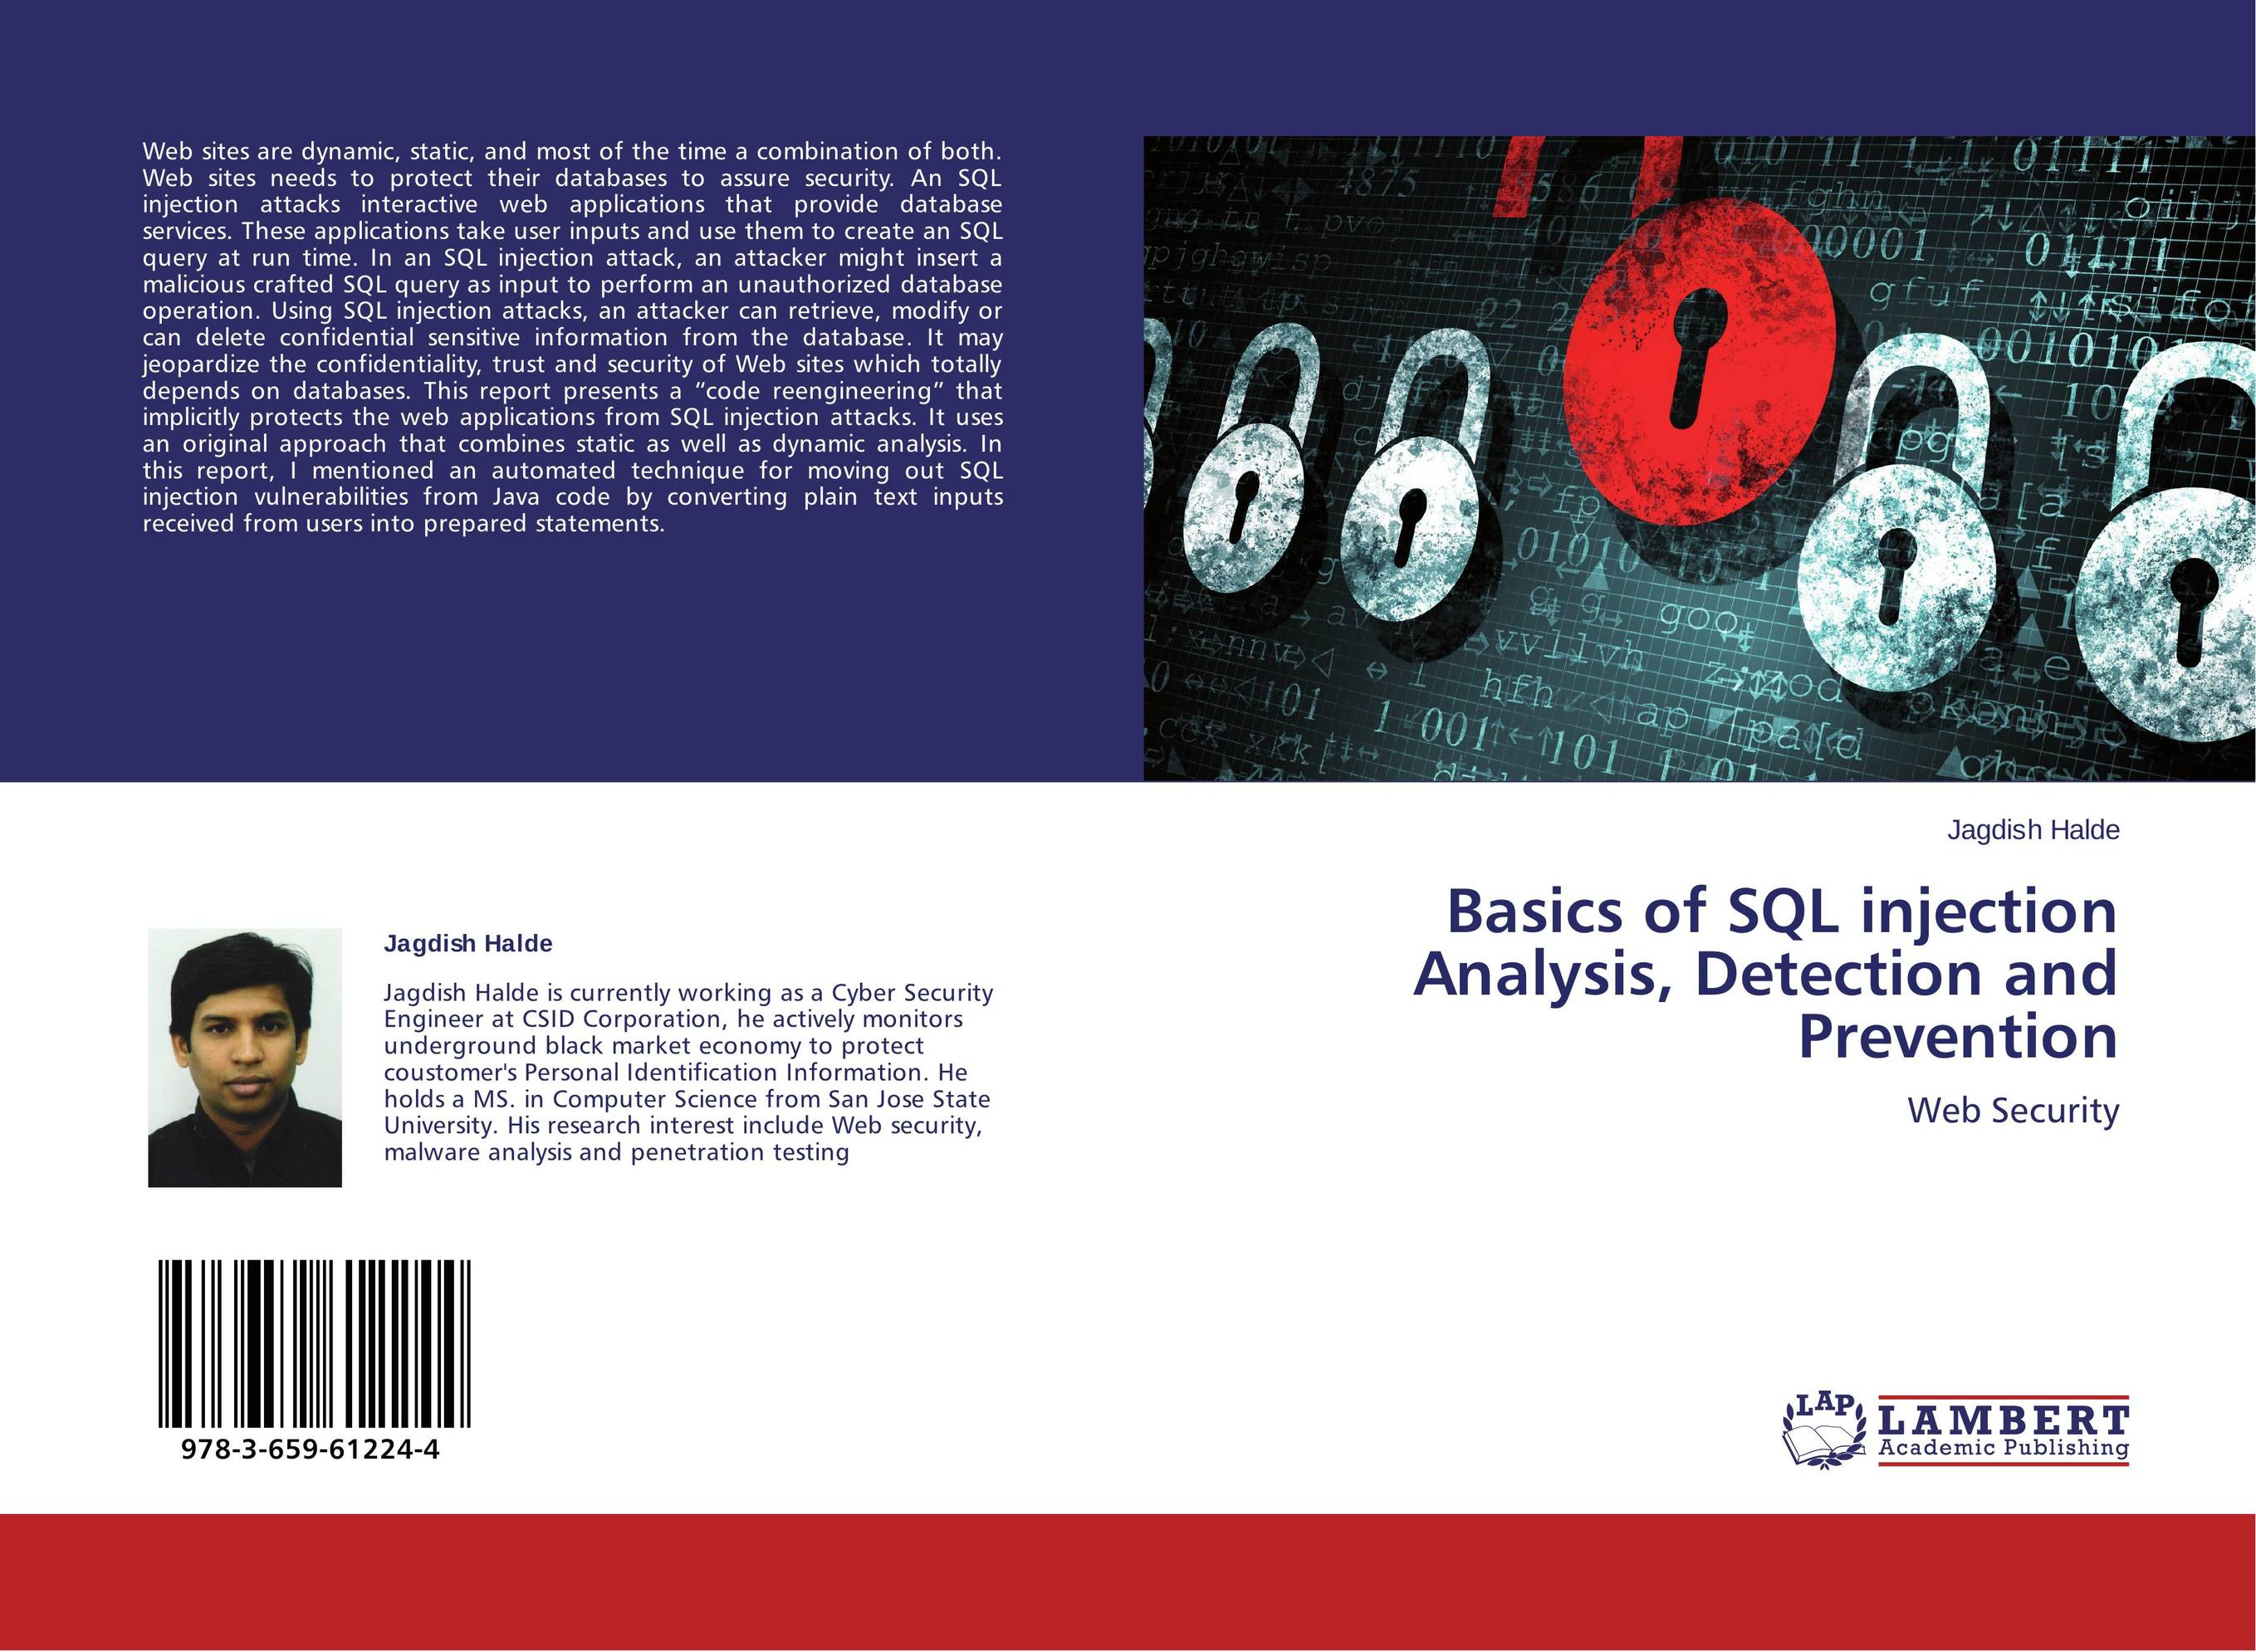 an approach to detect and prevent sql Microsoft sql server dynamically determines when to perform lock escalation when making this decision, sql server takes into account the number of locks that are held on a particular scan, the number of locks that are held by the whole transaction, and the memory that is being used for locks in the system as a whole.